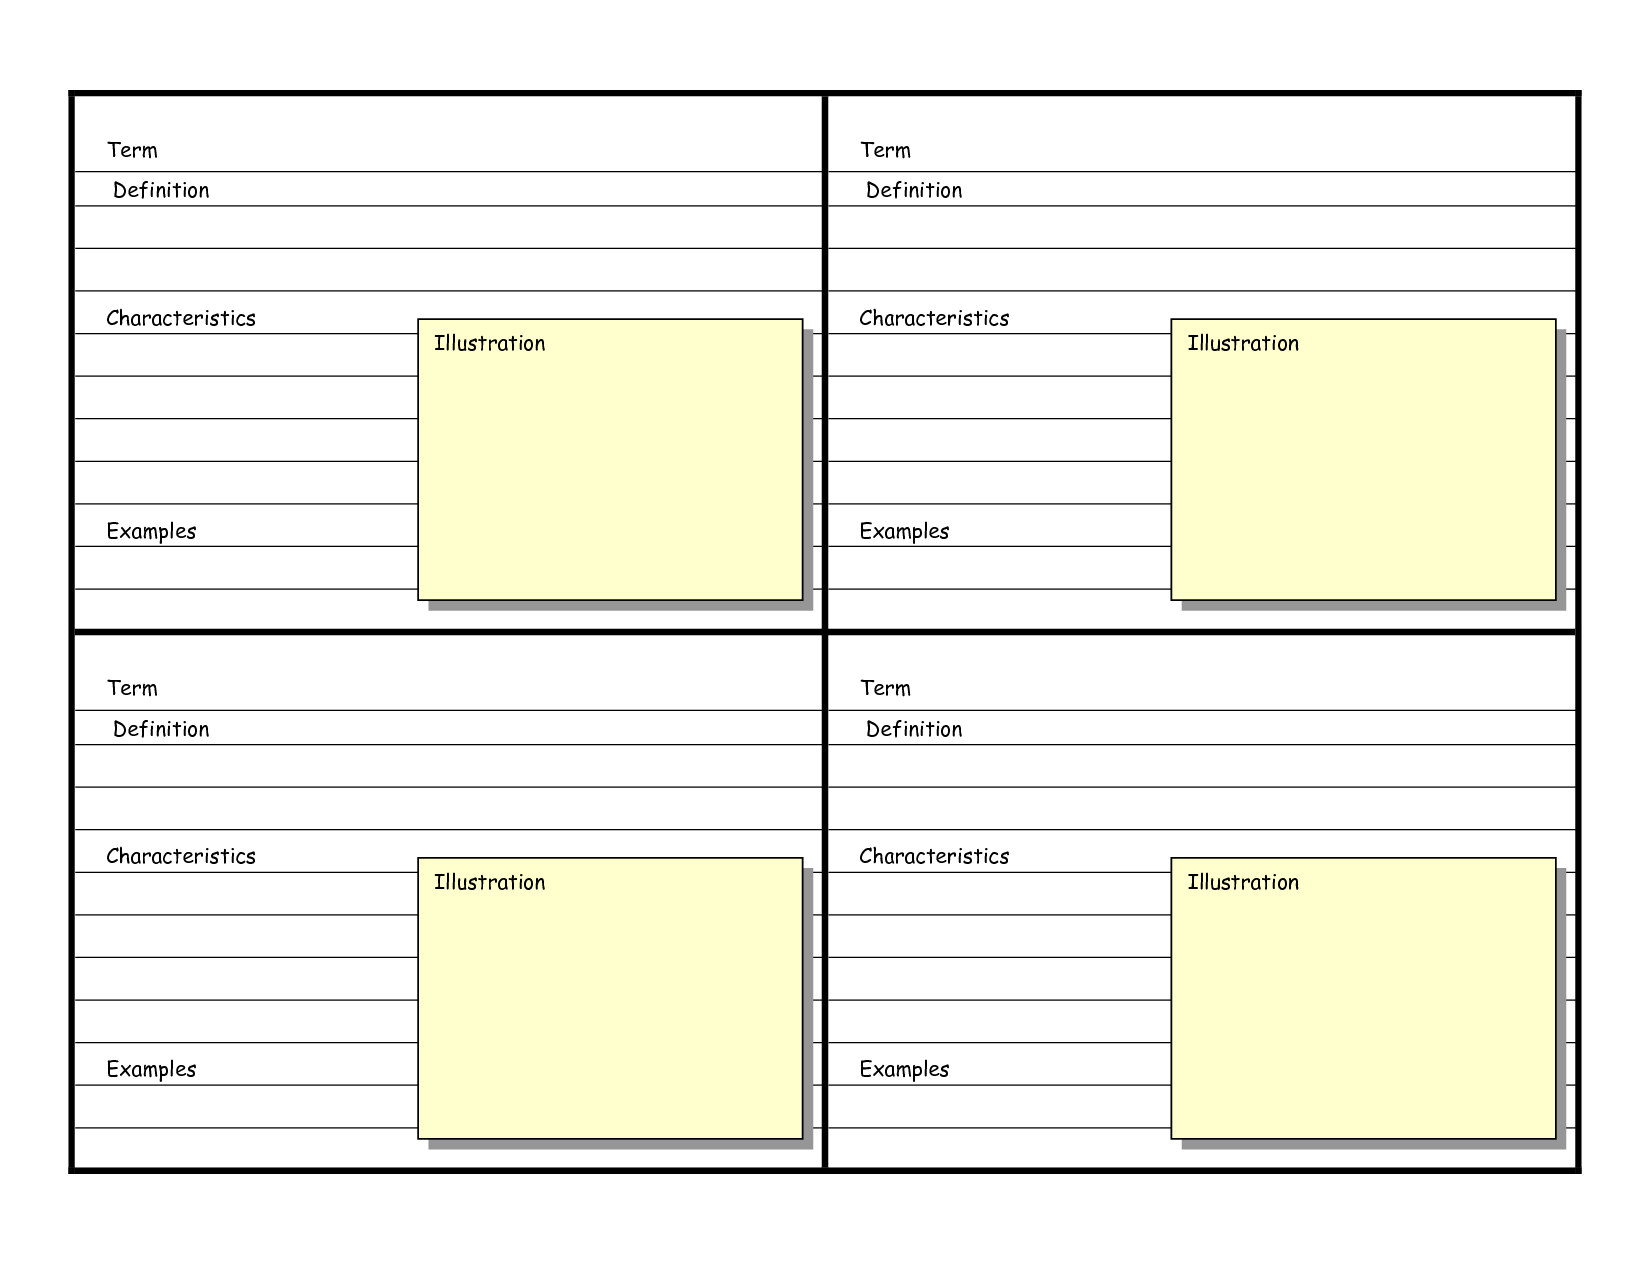 009 Template Ideas Index Card Word Impressive 2010 3X5 With Regard To 3X5 Blank Index Card Template